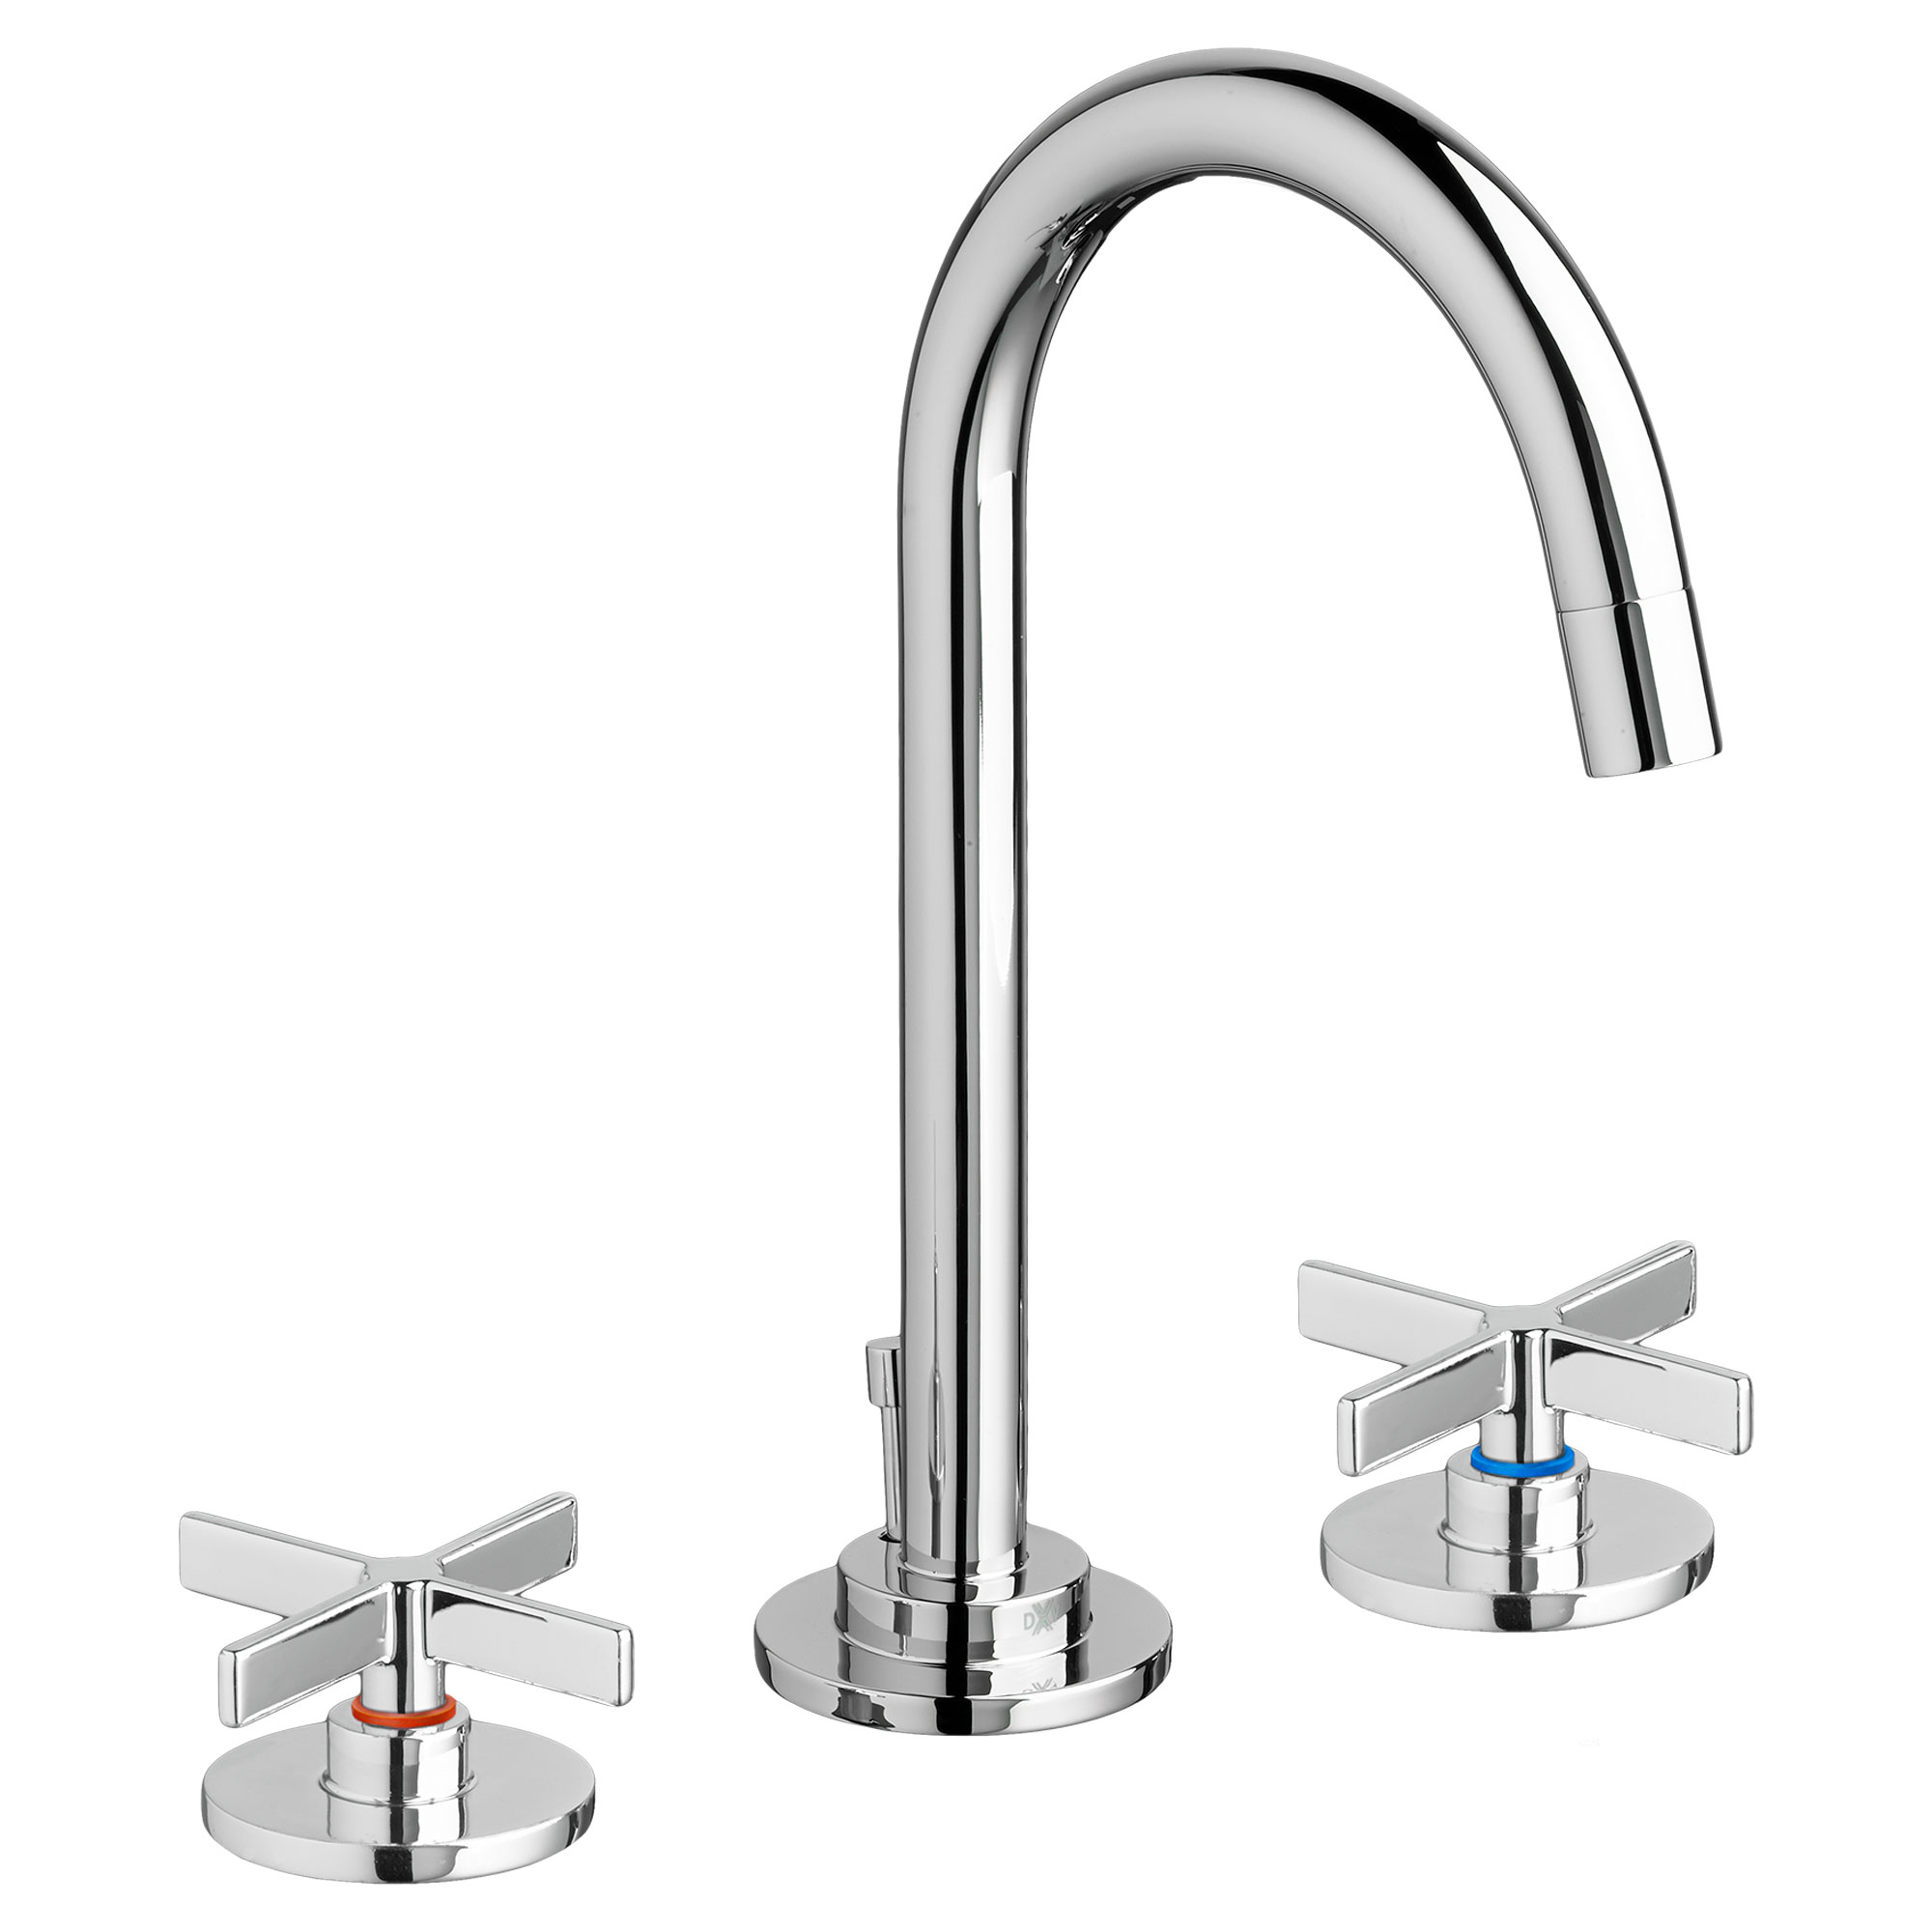 Percy Widespread Bathroom Faucet with Cross Handles - Projects Model